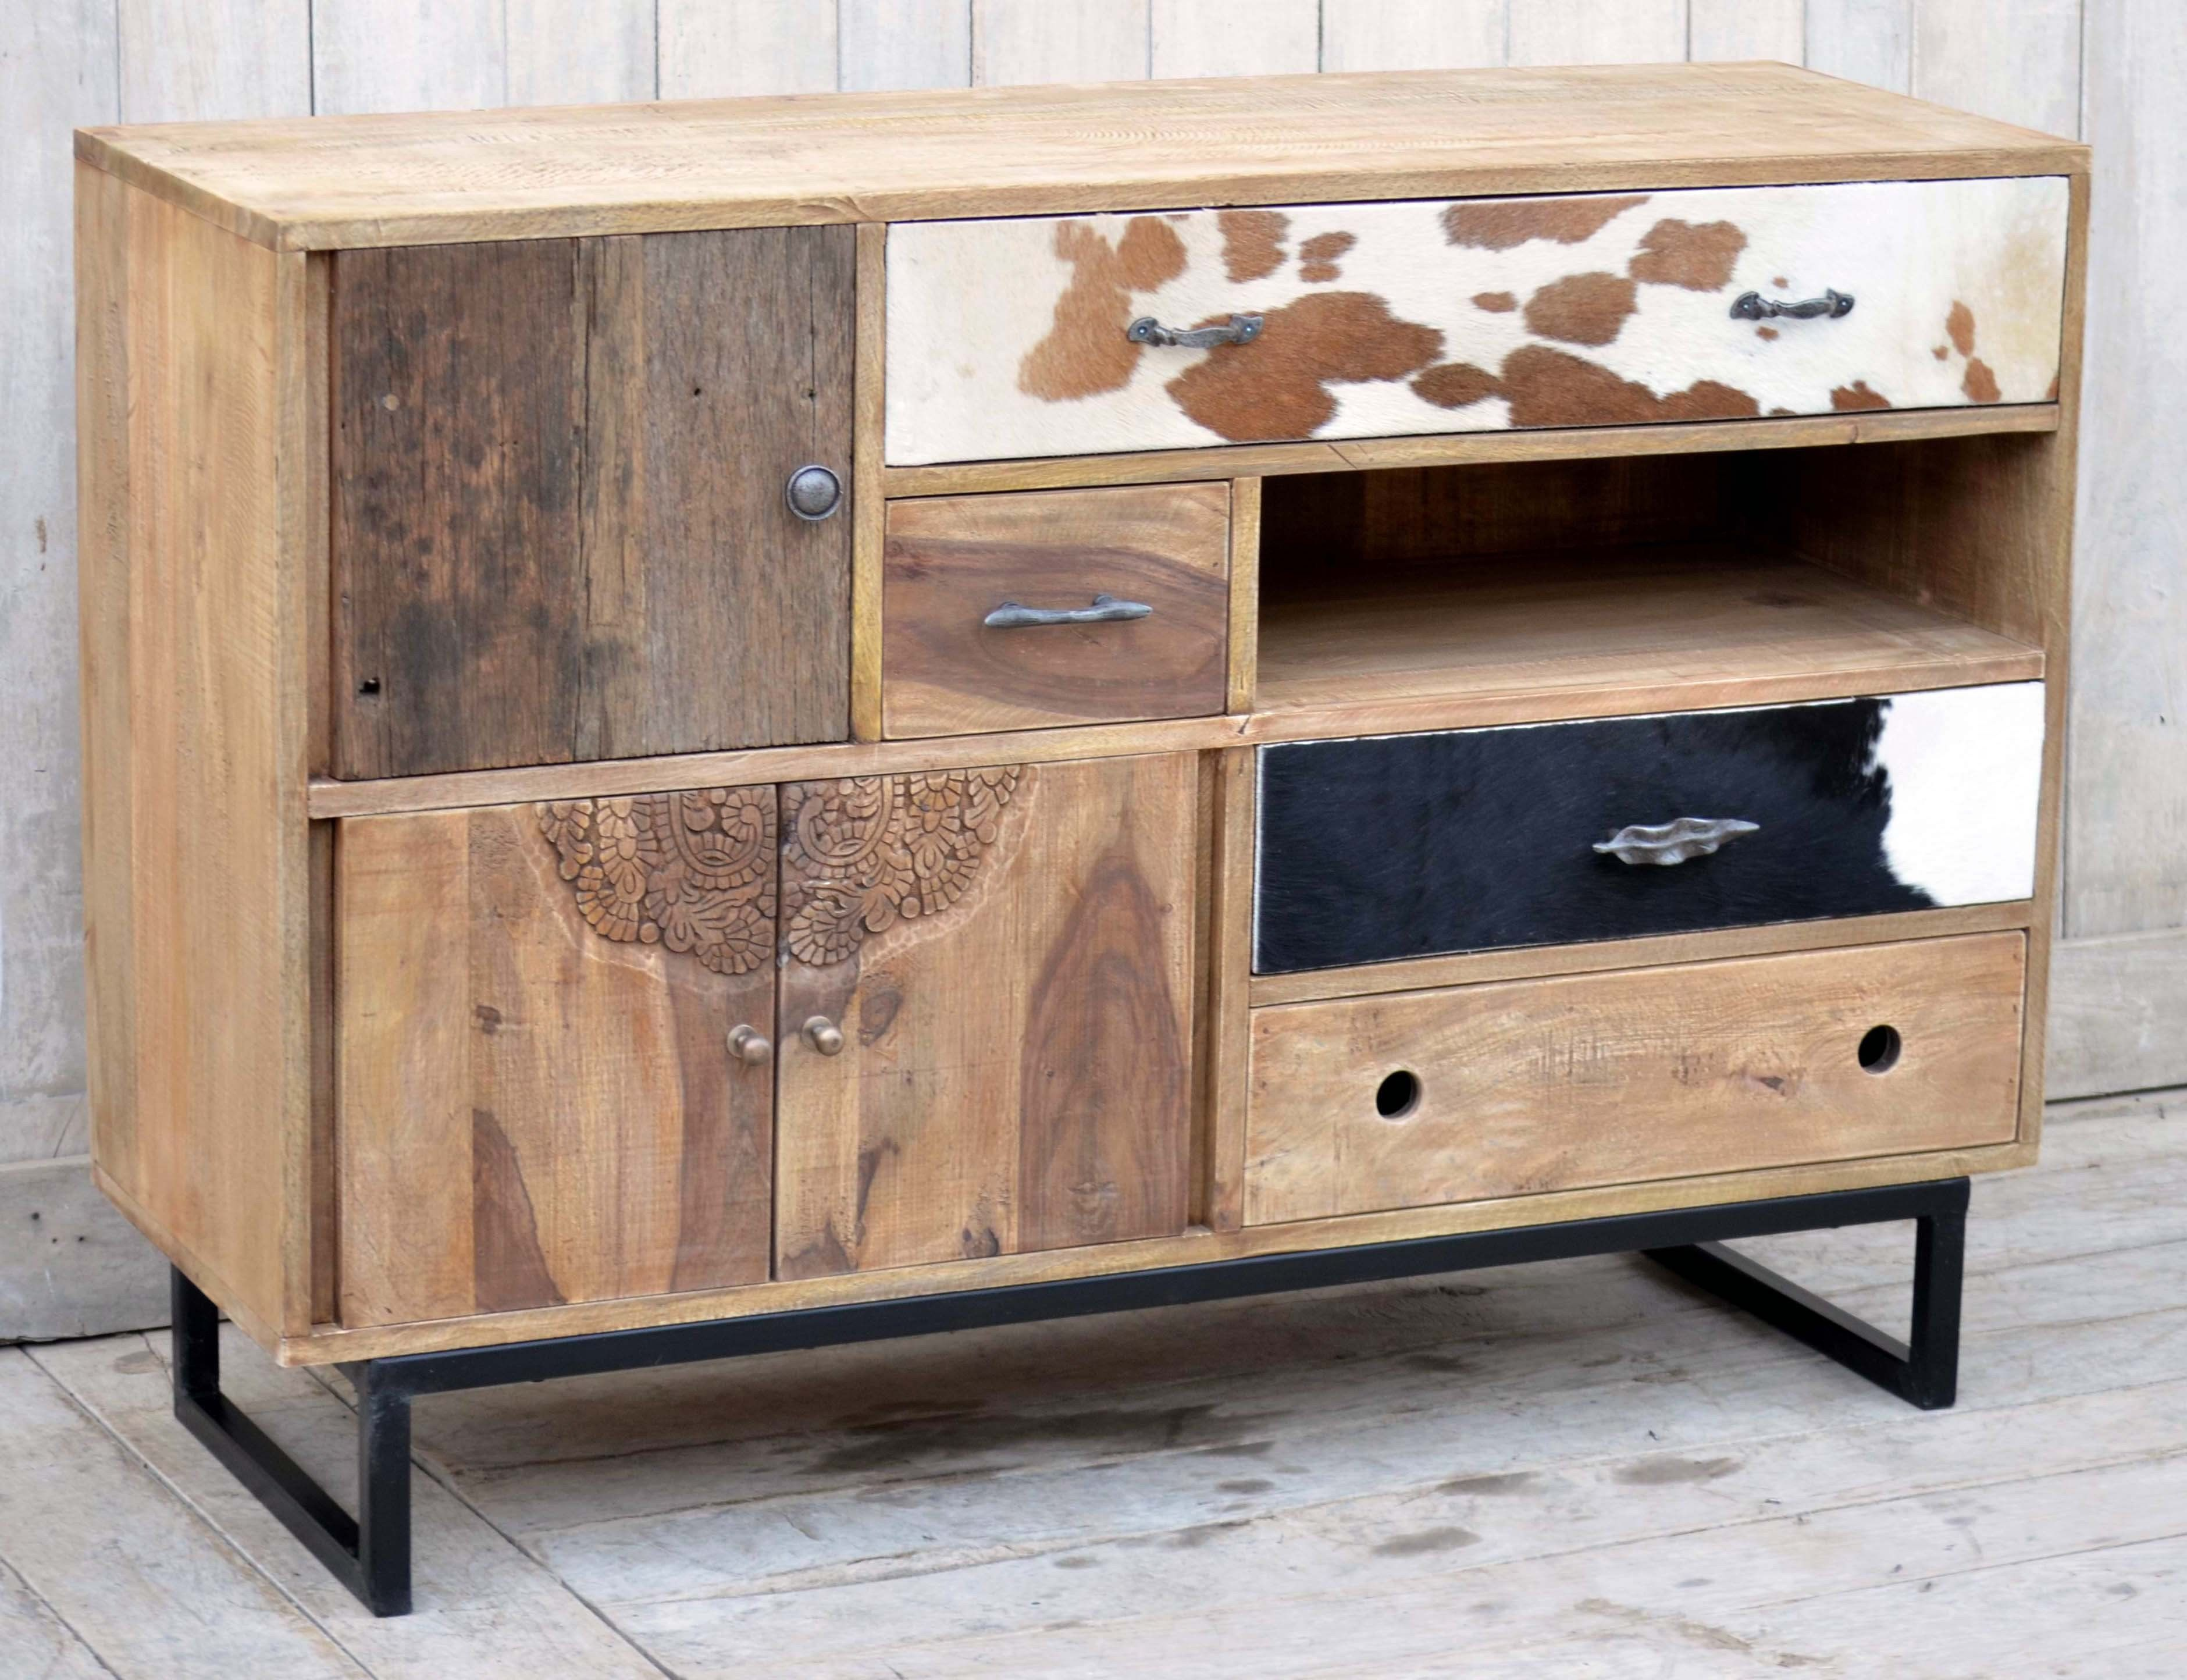 Hardwood Chest Of Draws With Cow Pattern And Hand Carved Bedroom